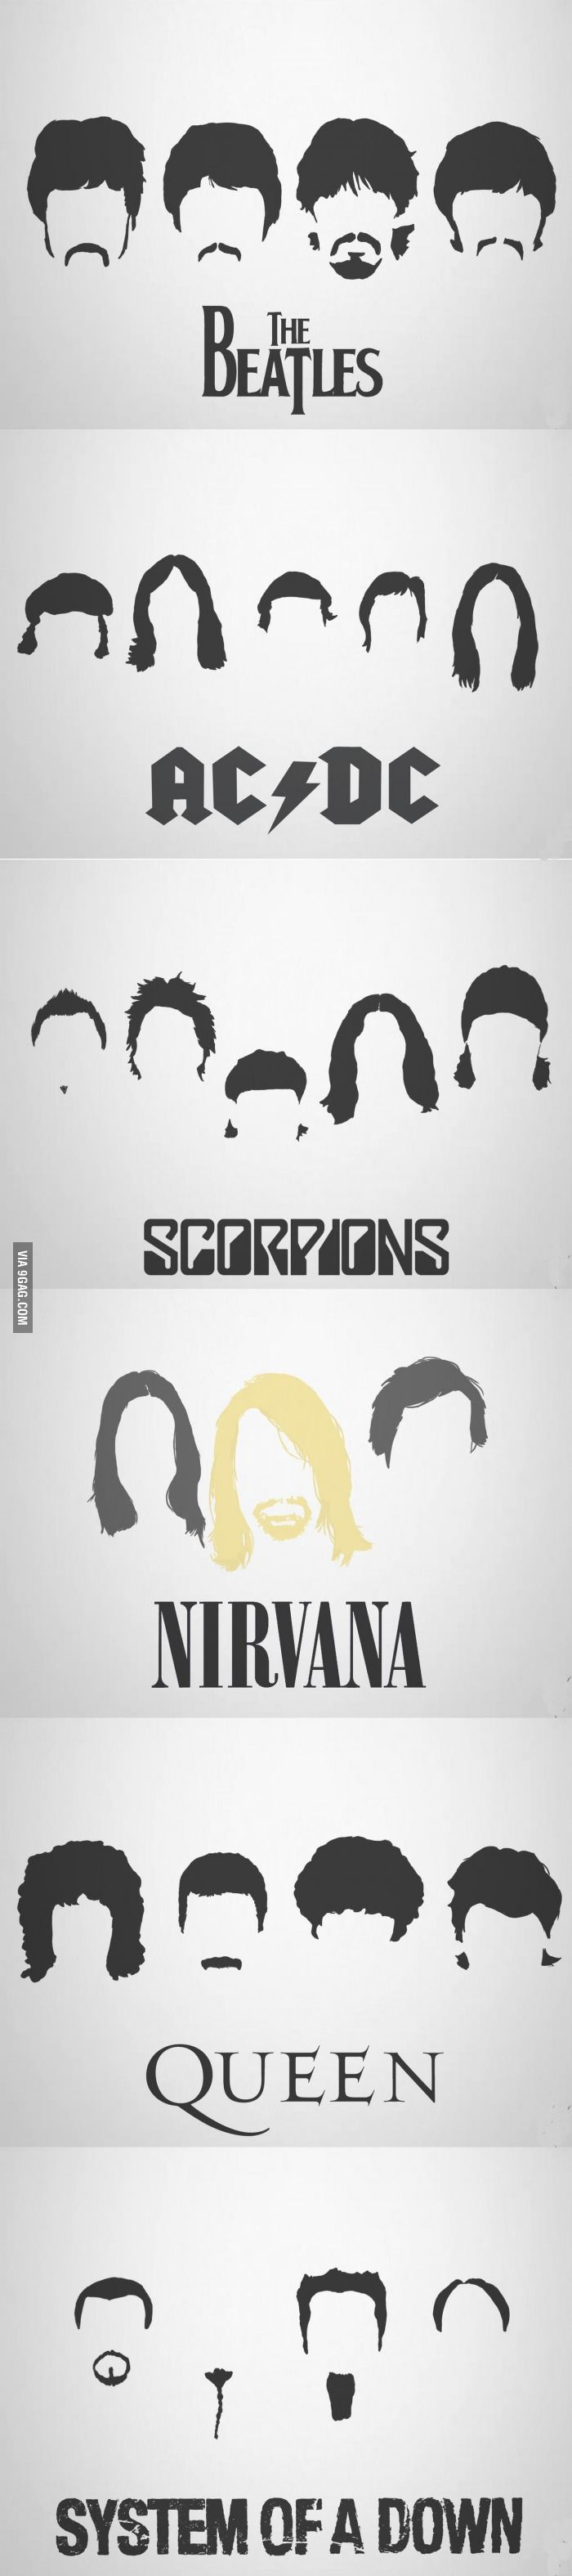 Epic bands, epic haircuts. Kurt is the only blondie, hee hee!